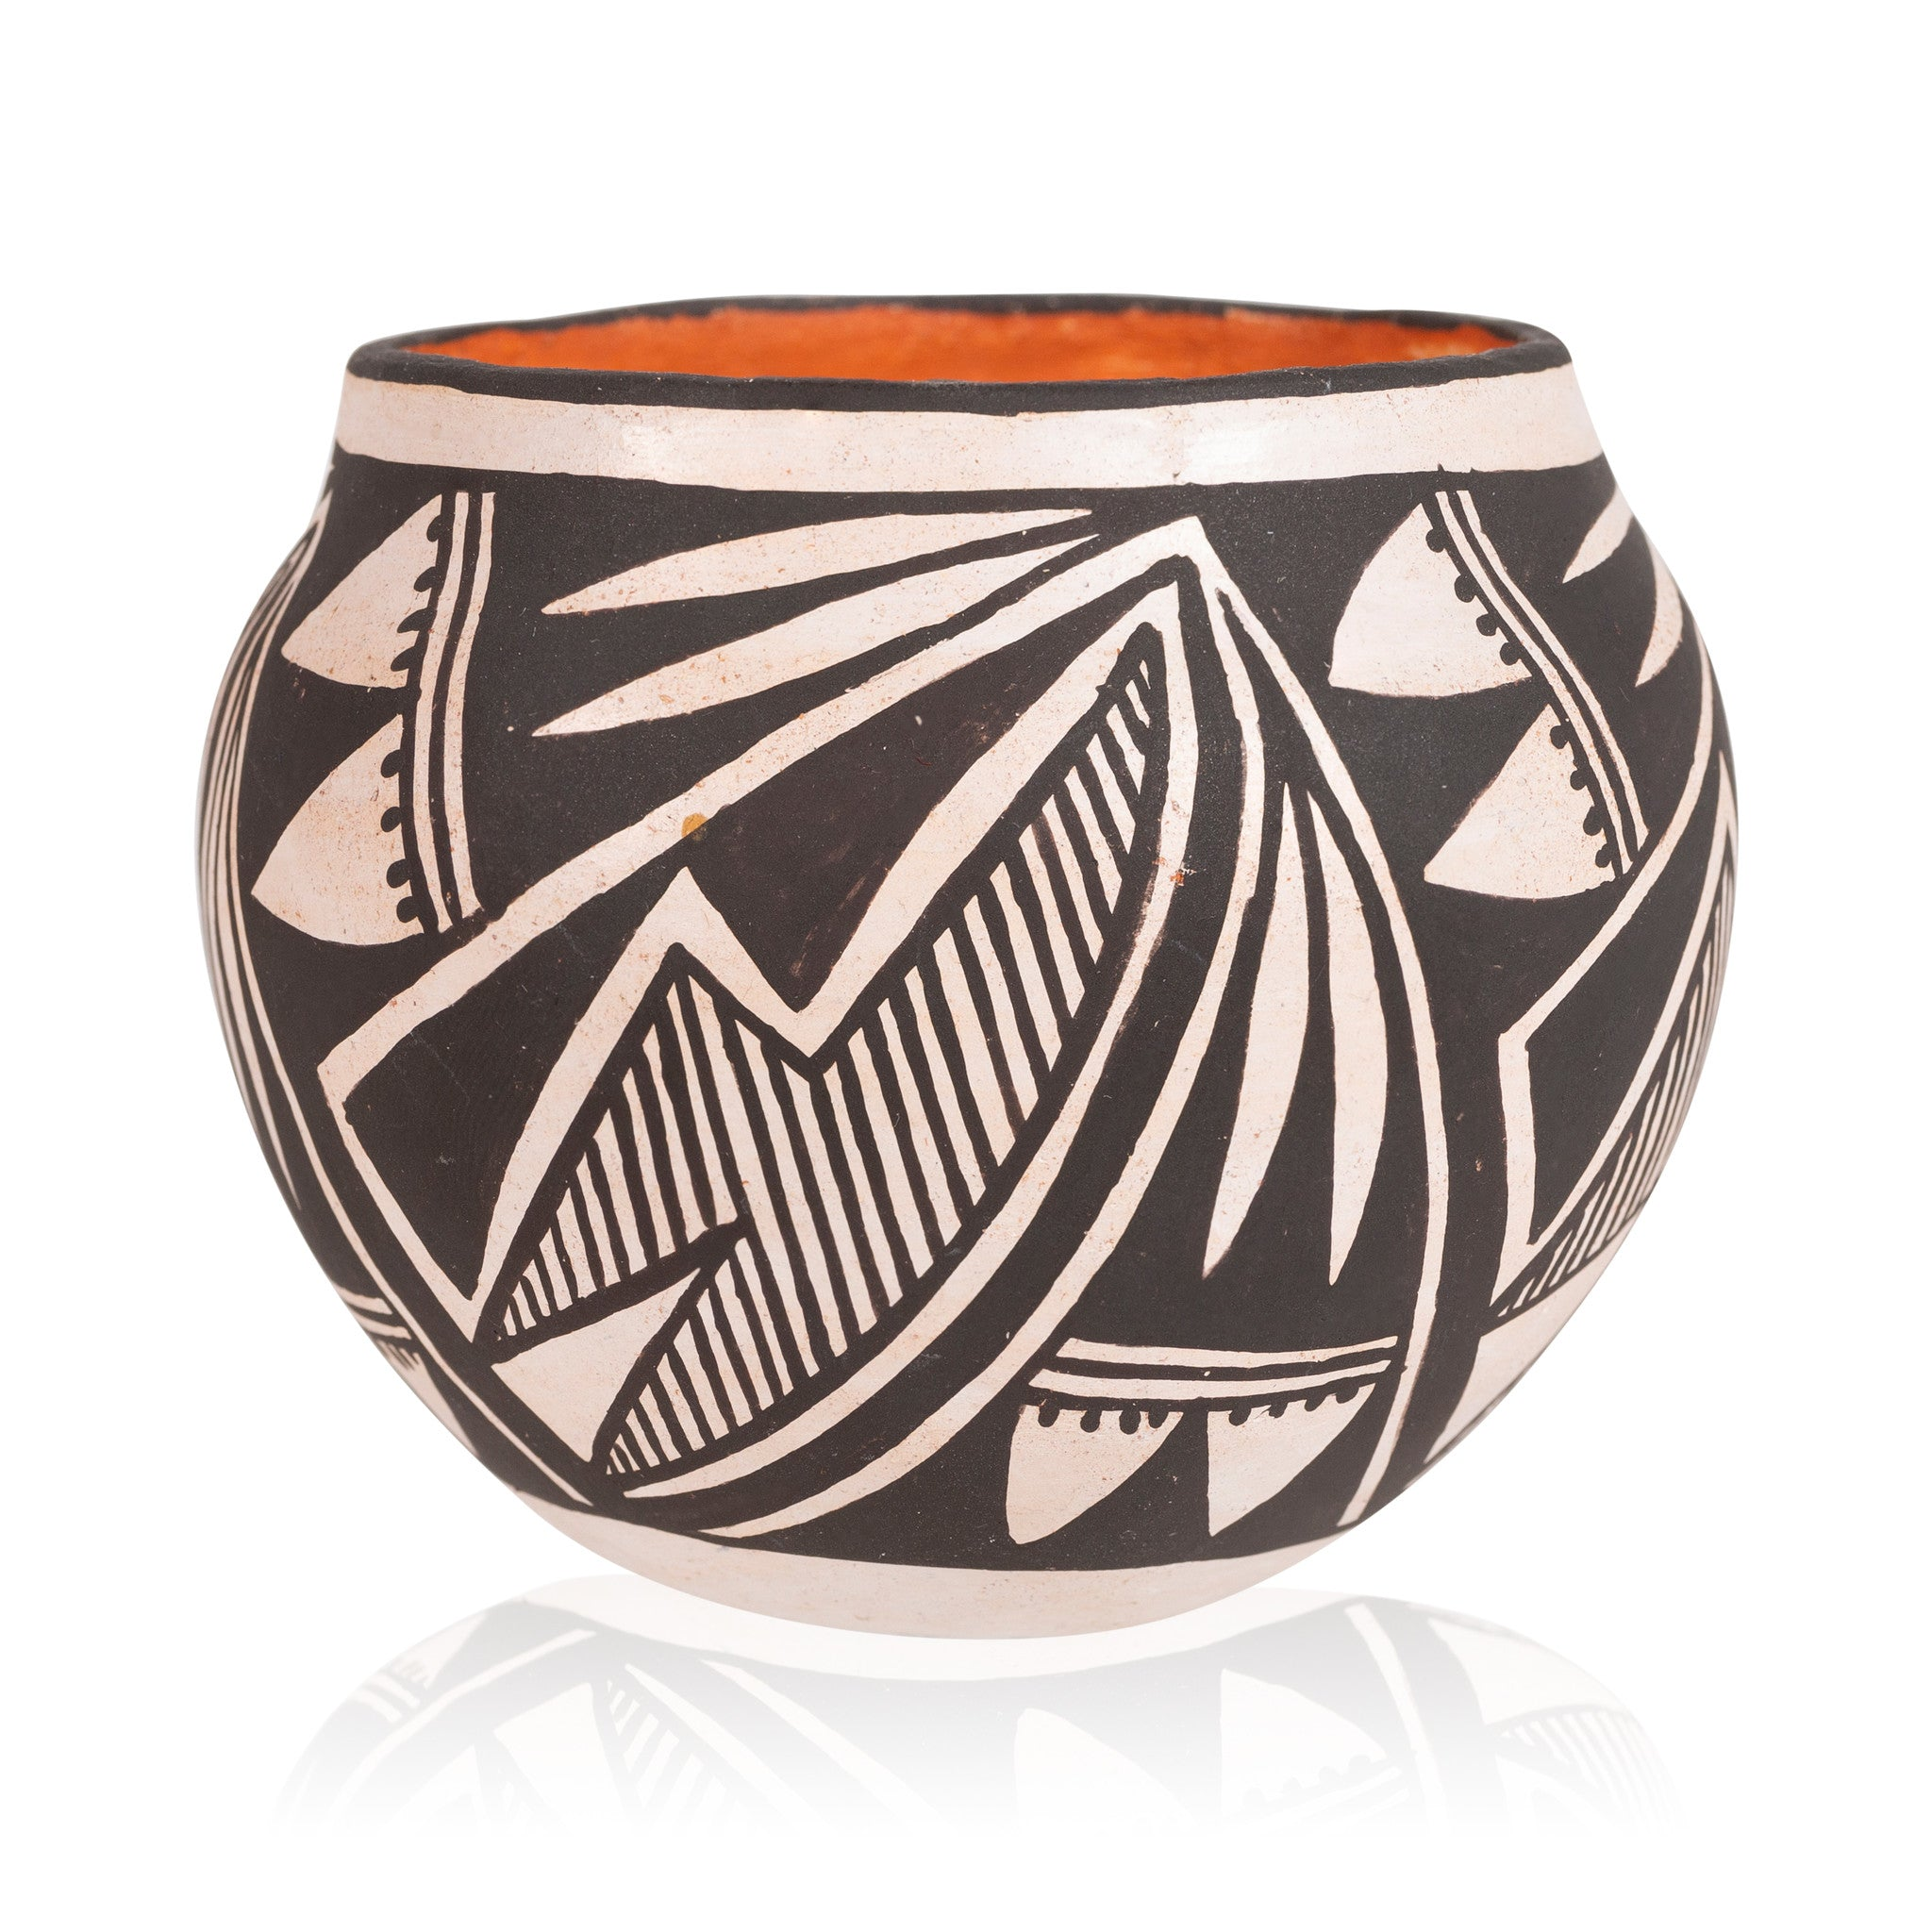 Miniature Acoma Jar acoma, jars, miniatures